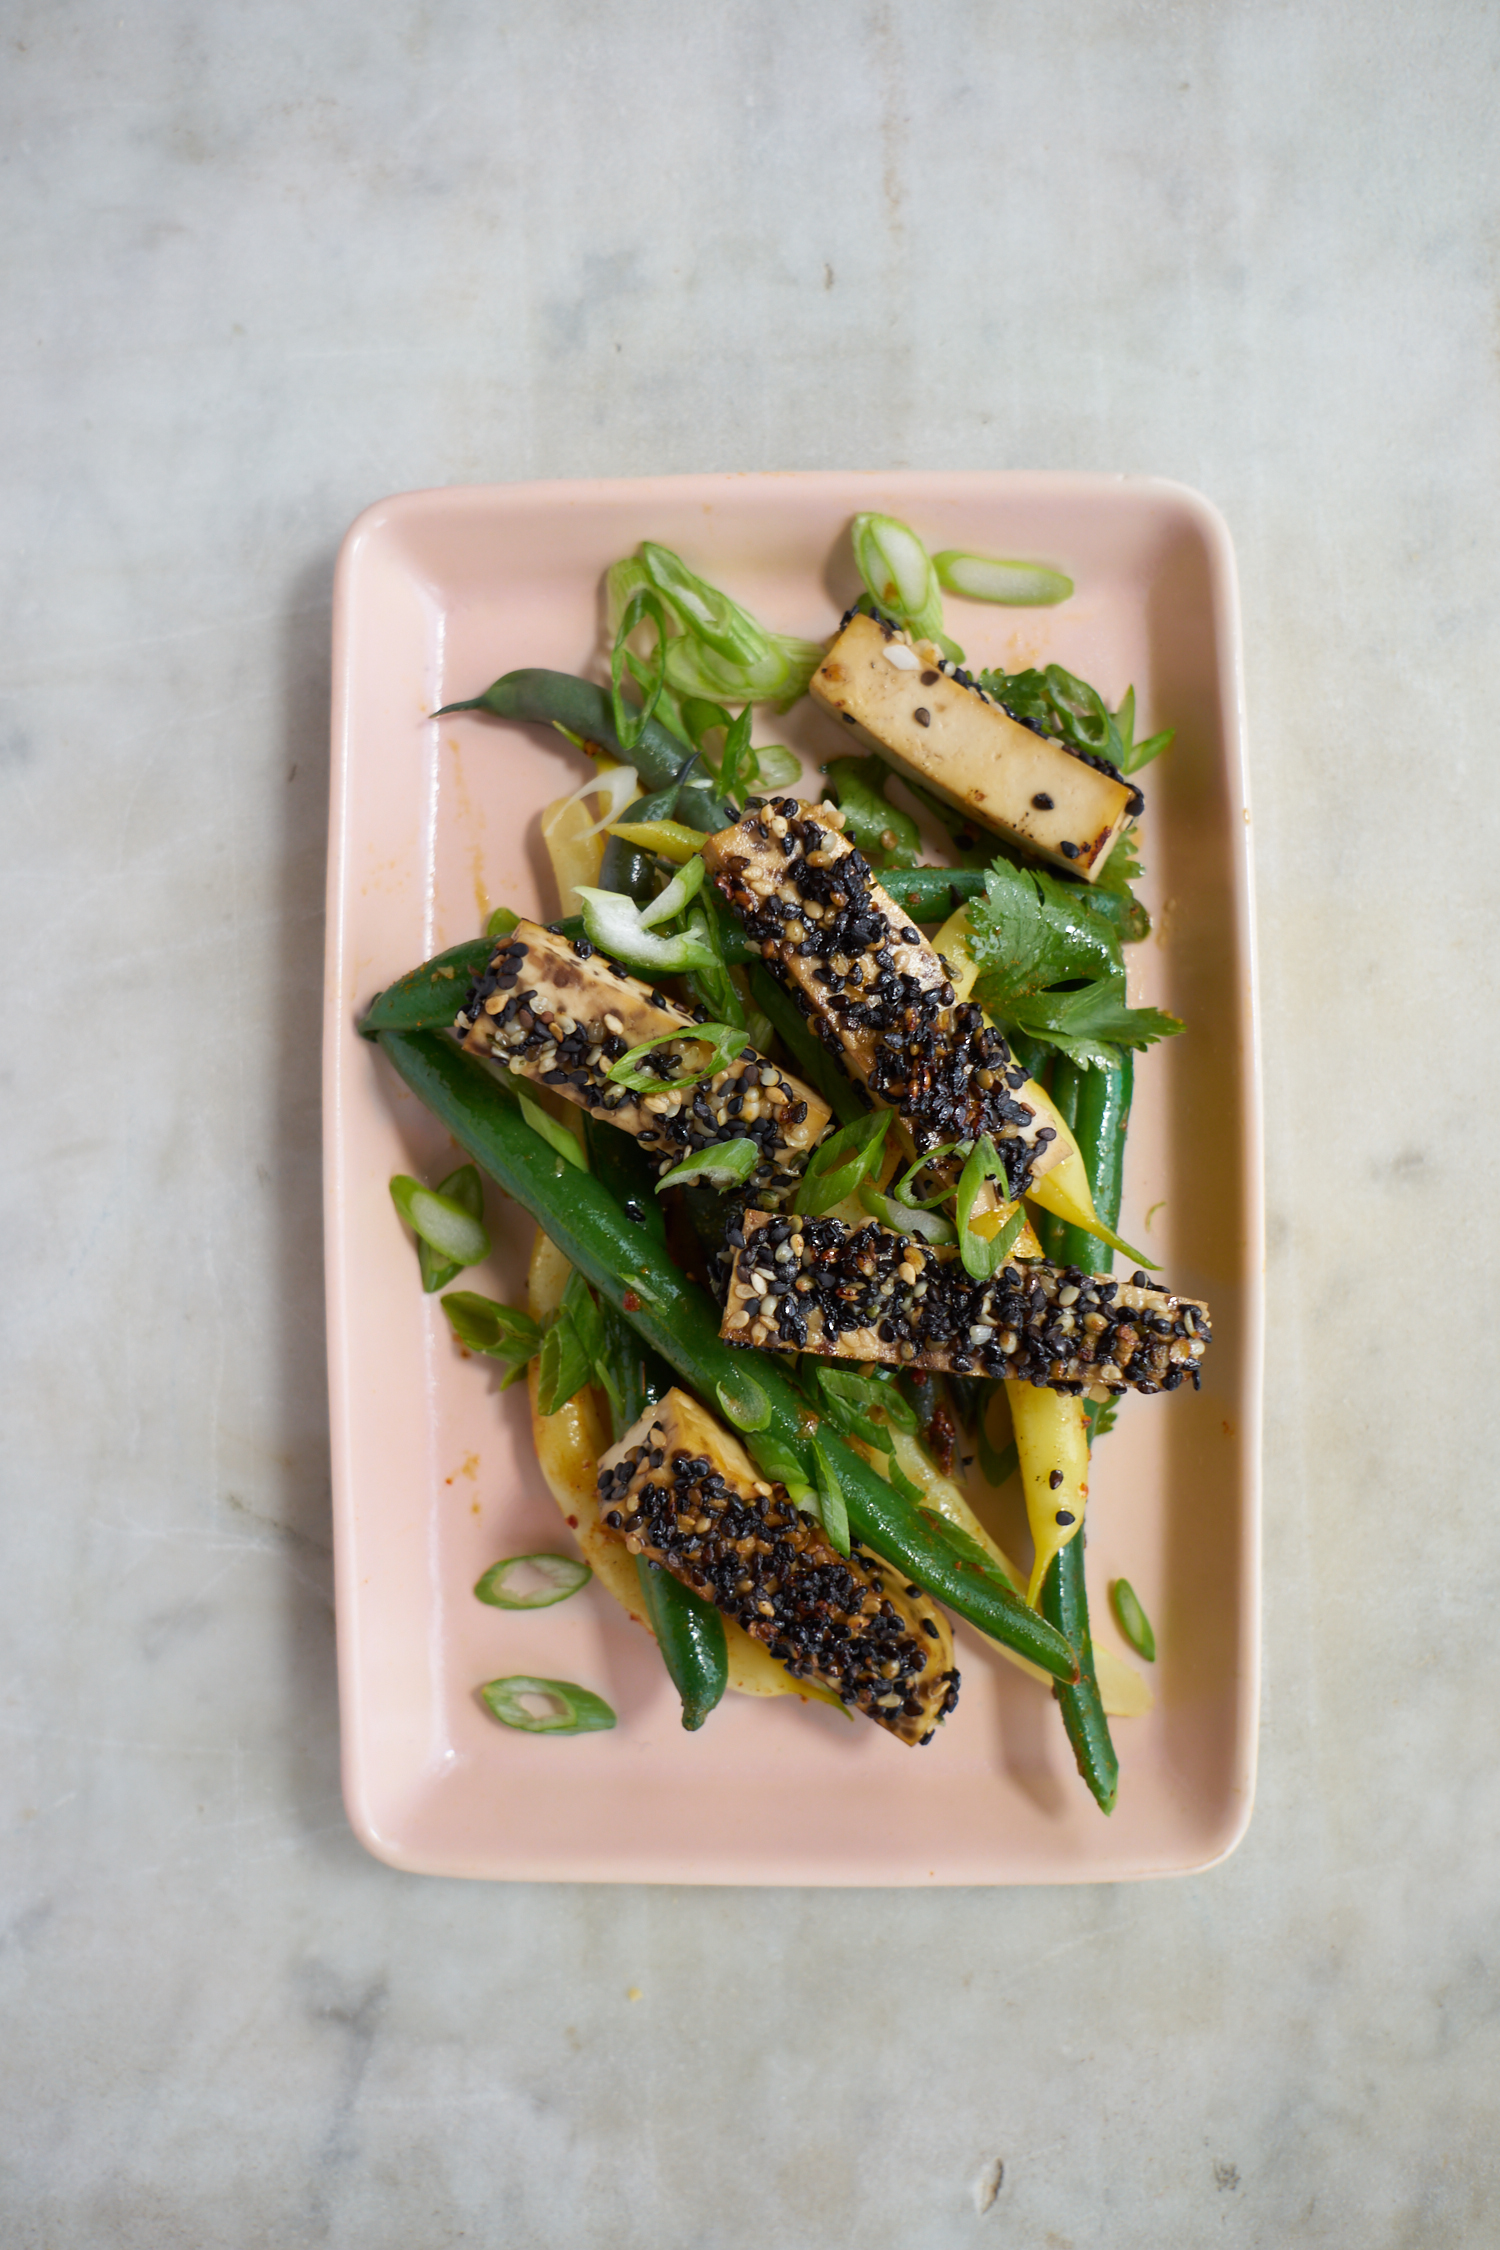 Golden-crusted Sesame Seeded Tofu | 101 Cookbooks